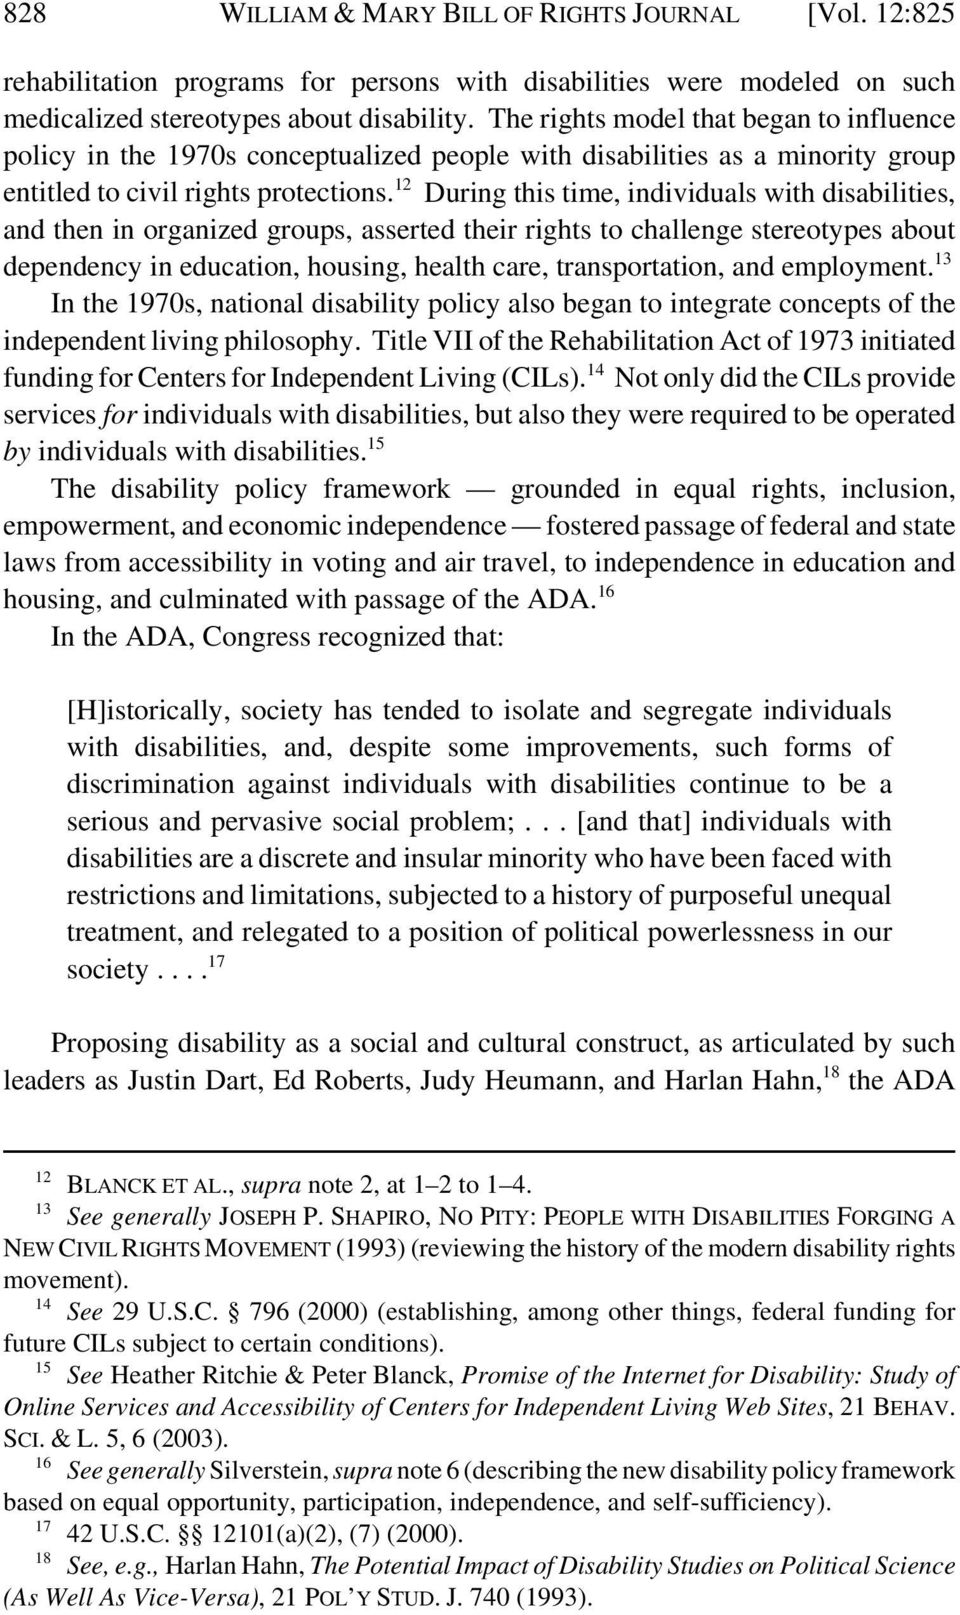 12 During this time, individuals with disabilities, and then in organized groups, asserted their rights to challenge stereotypes about dependency in education, housing, health care, transportation,